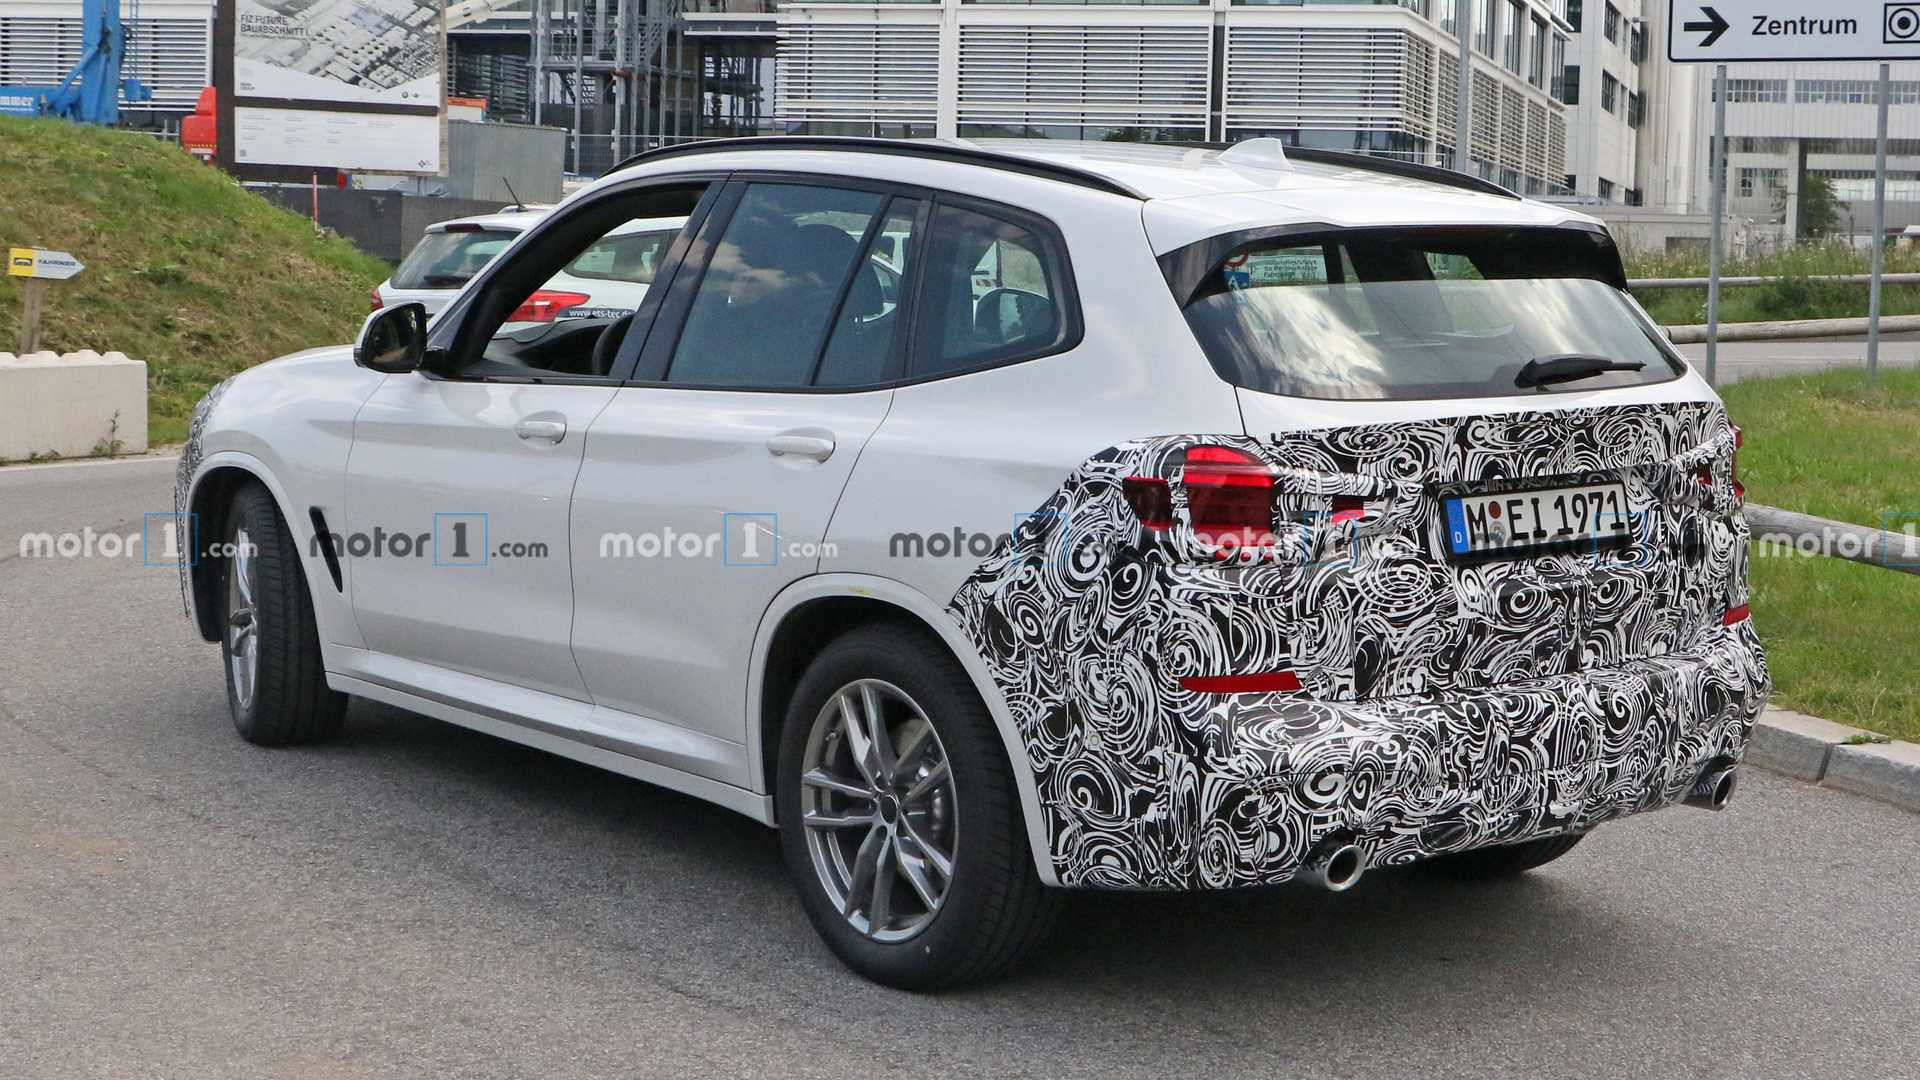 2022-bmw-x​3-spied-up​-close